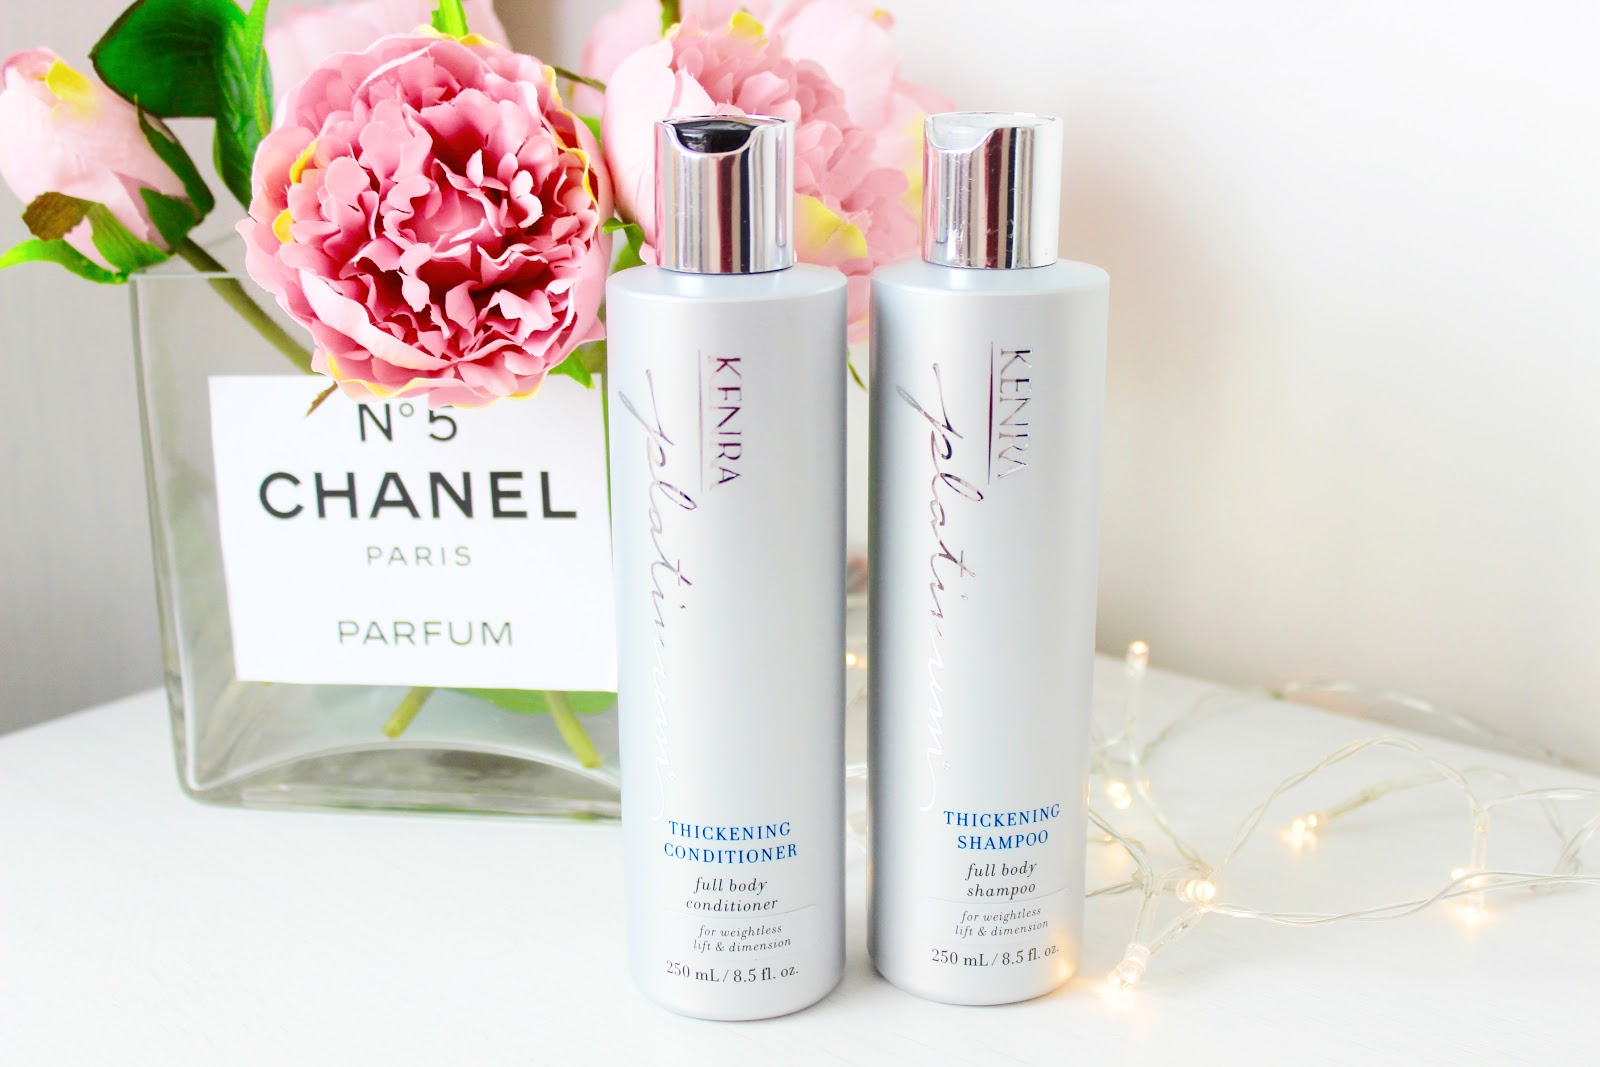 Kenra Haircare shampoo and conditioner